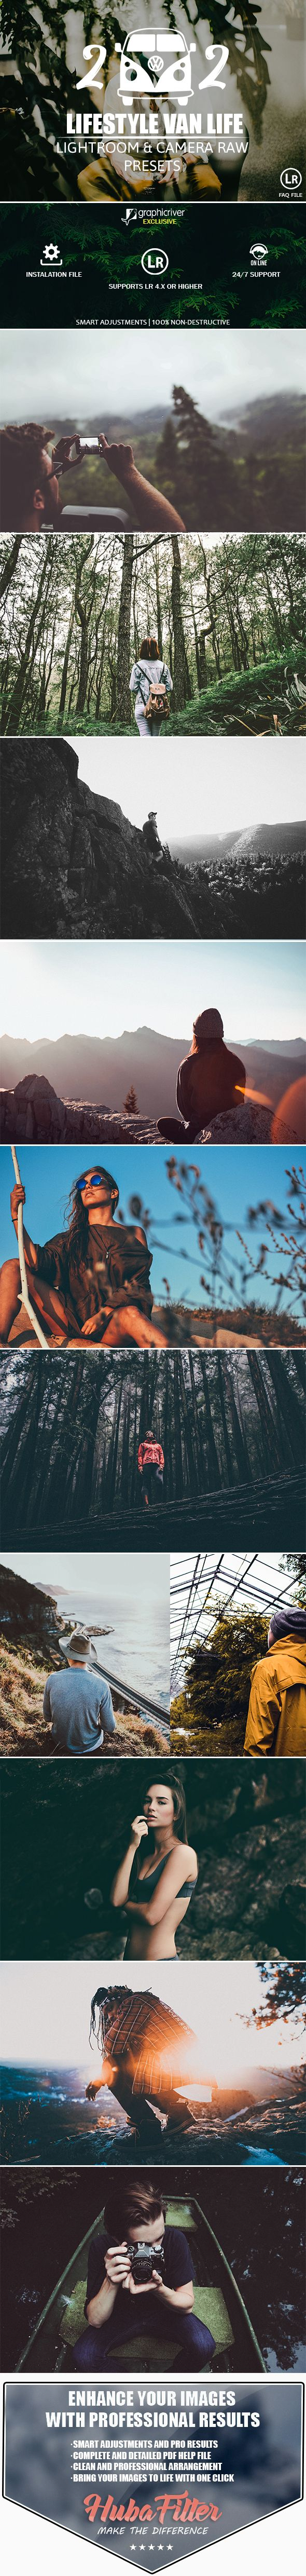 90 best lightroom drag drop photo collage templates images on